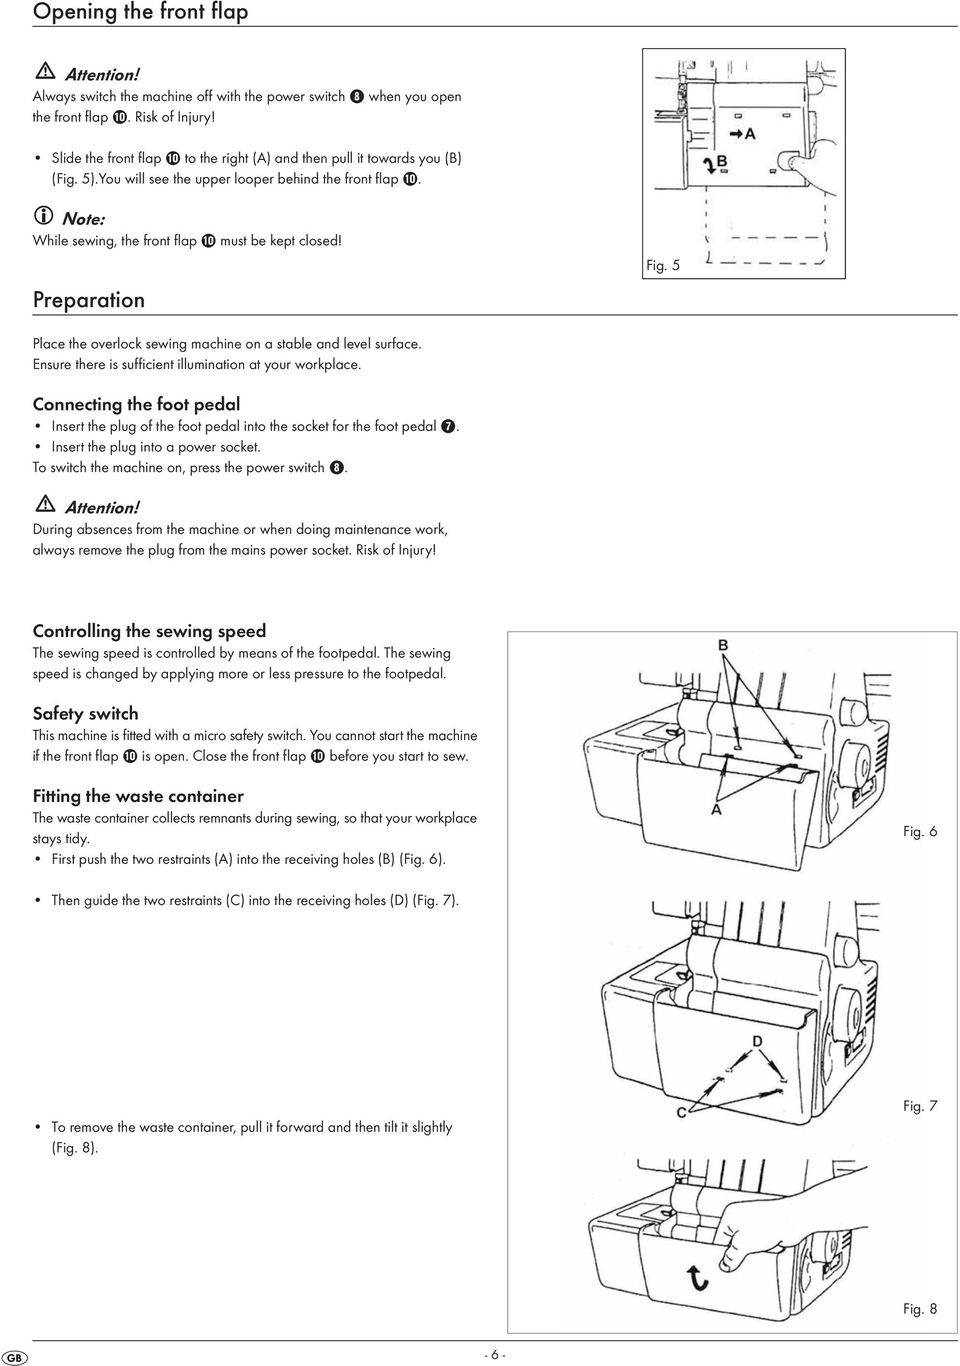 Preparation Fig. 5 Place the overlock sewing machine on a stable and level surface. Ensure there is sufficient illumination at your workplace.